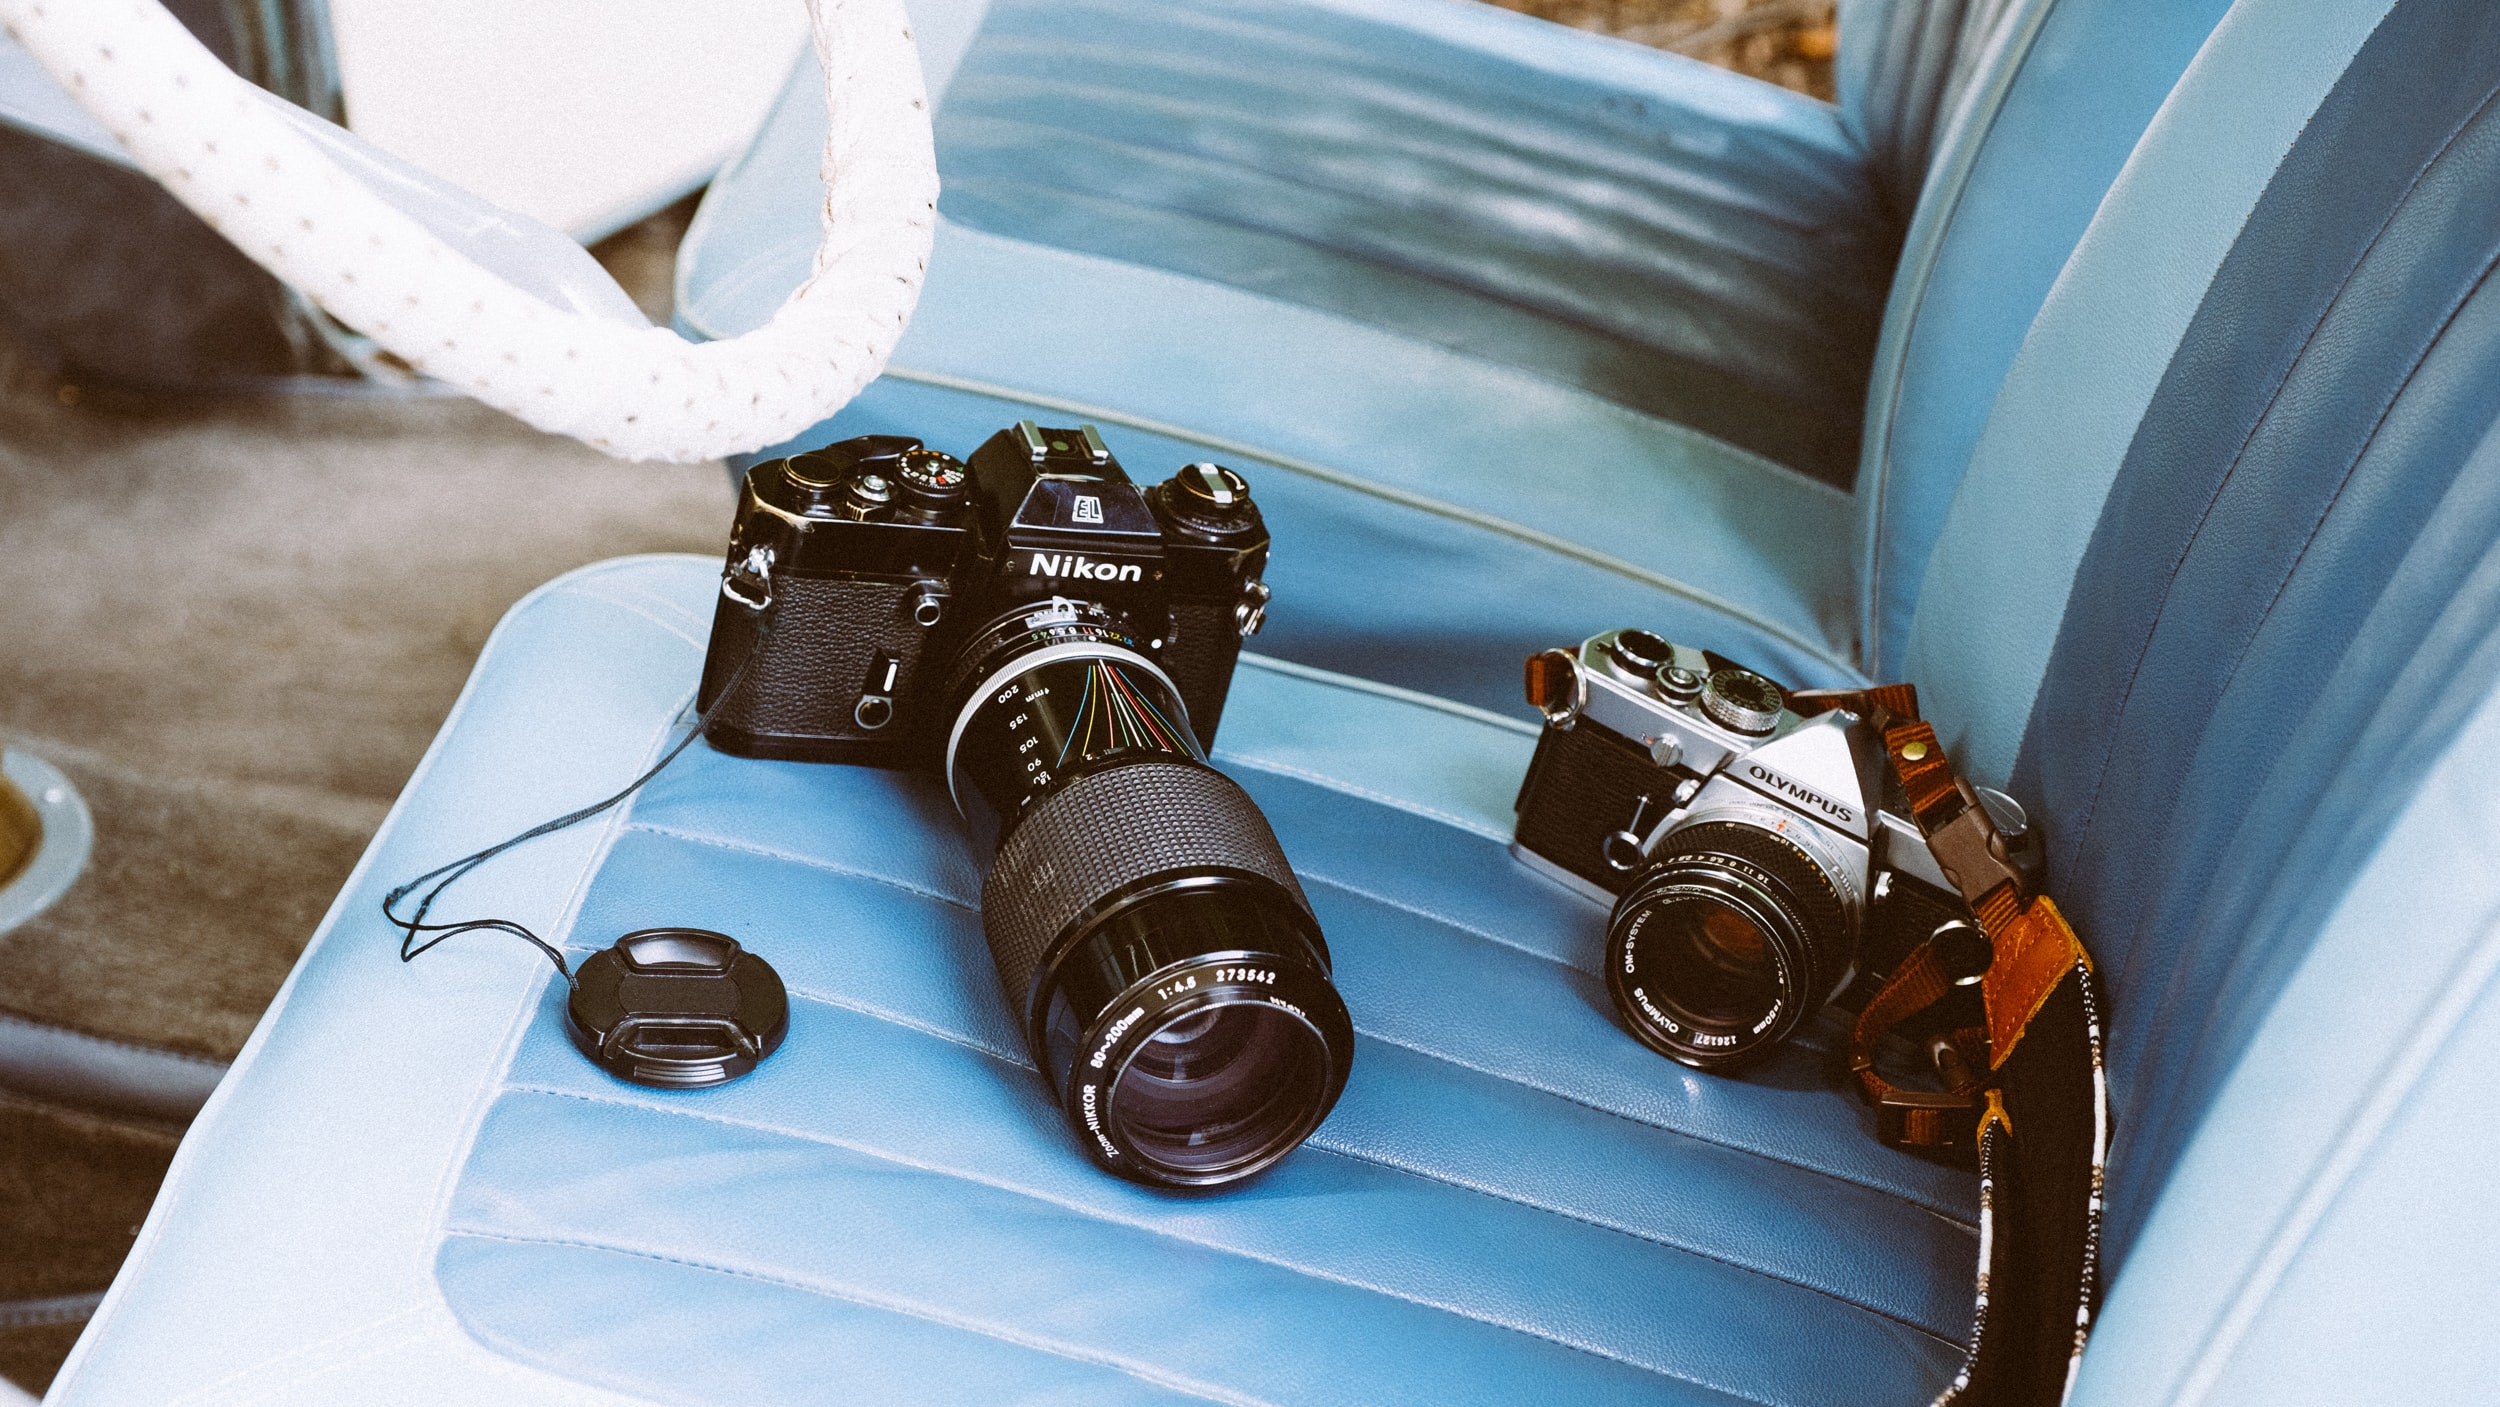 Photographer's Nikon and Olympus cameras on a car seat